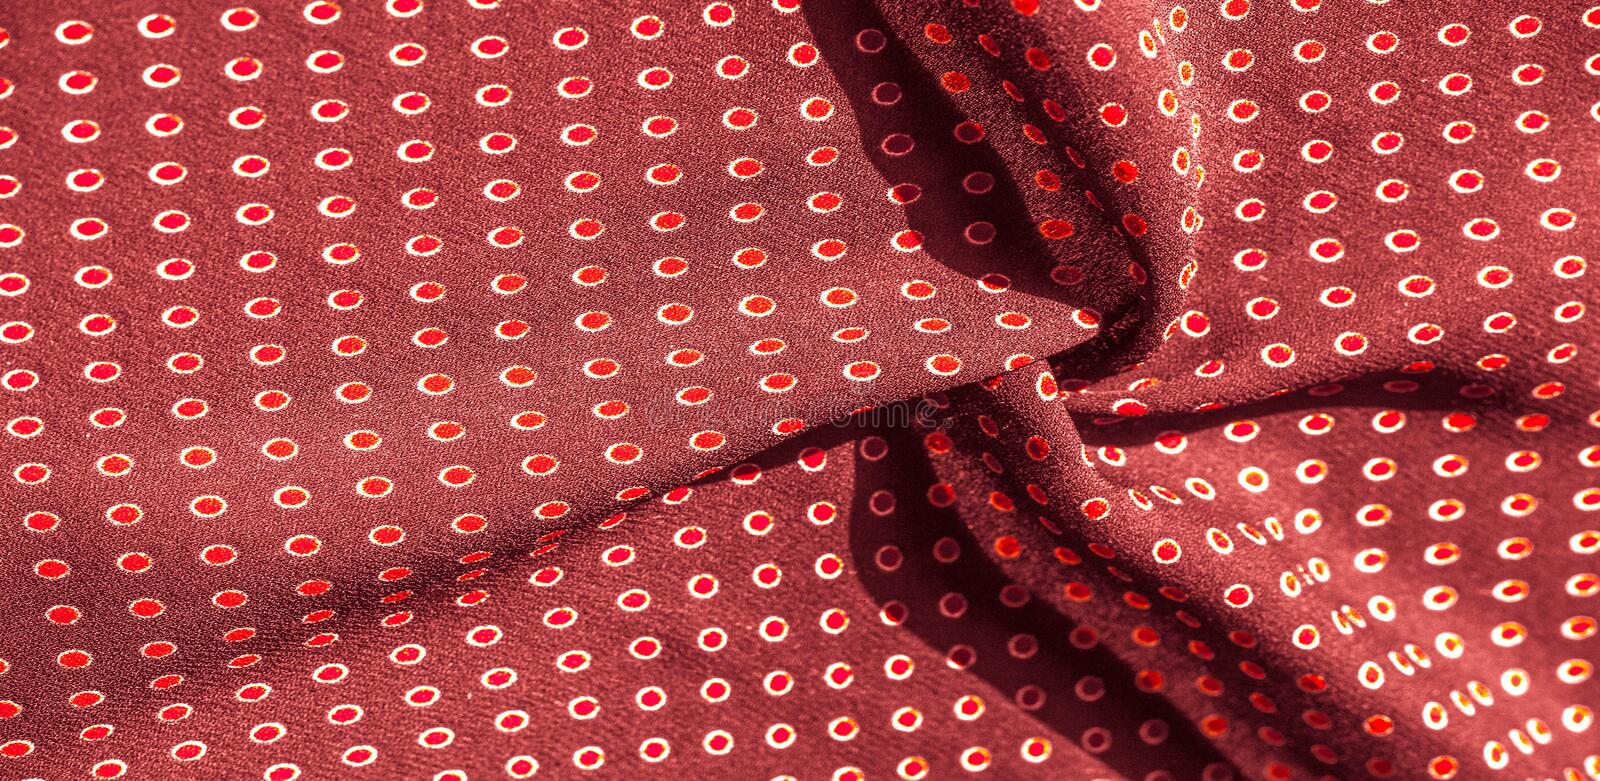 Texture background, pattern, red silk fabric with red polka dots. Light and silky-soft satin pendant is perfect for your design,. Online projects. It is also stock photography